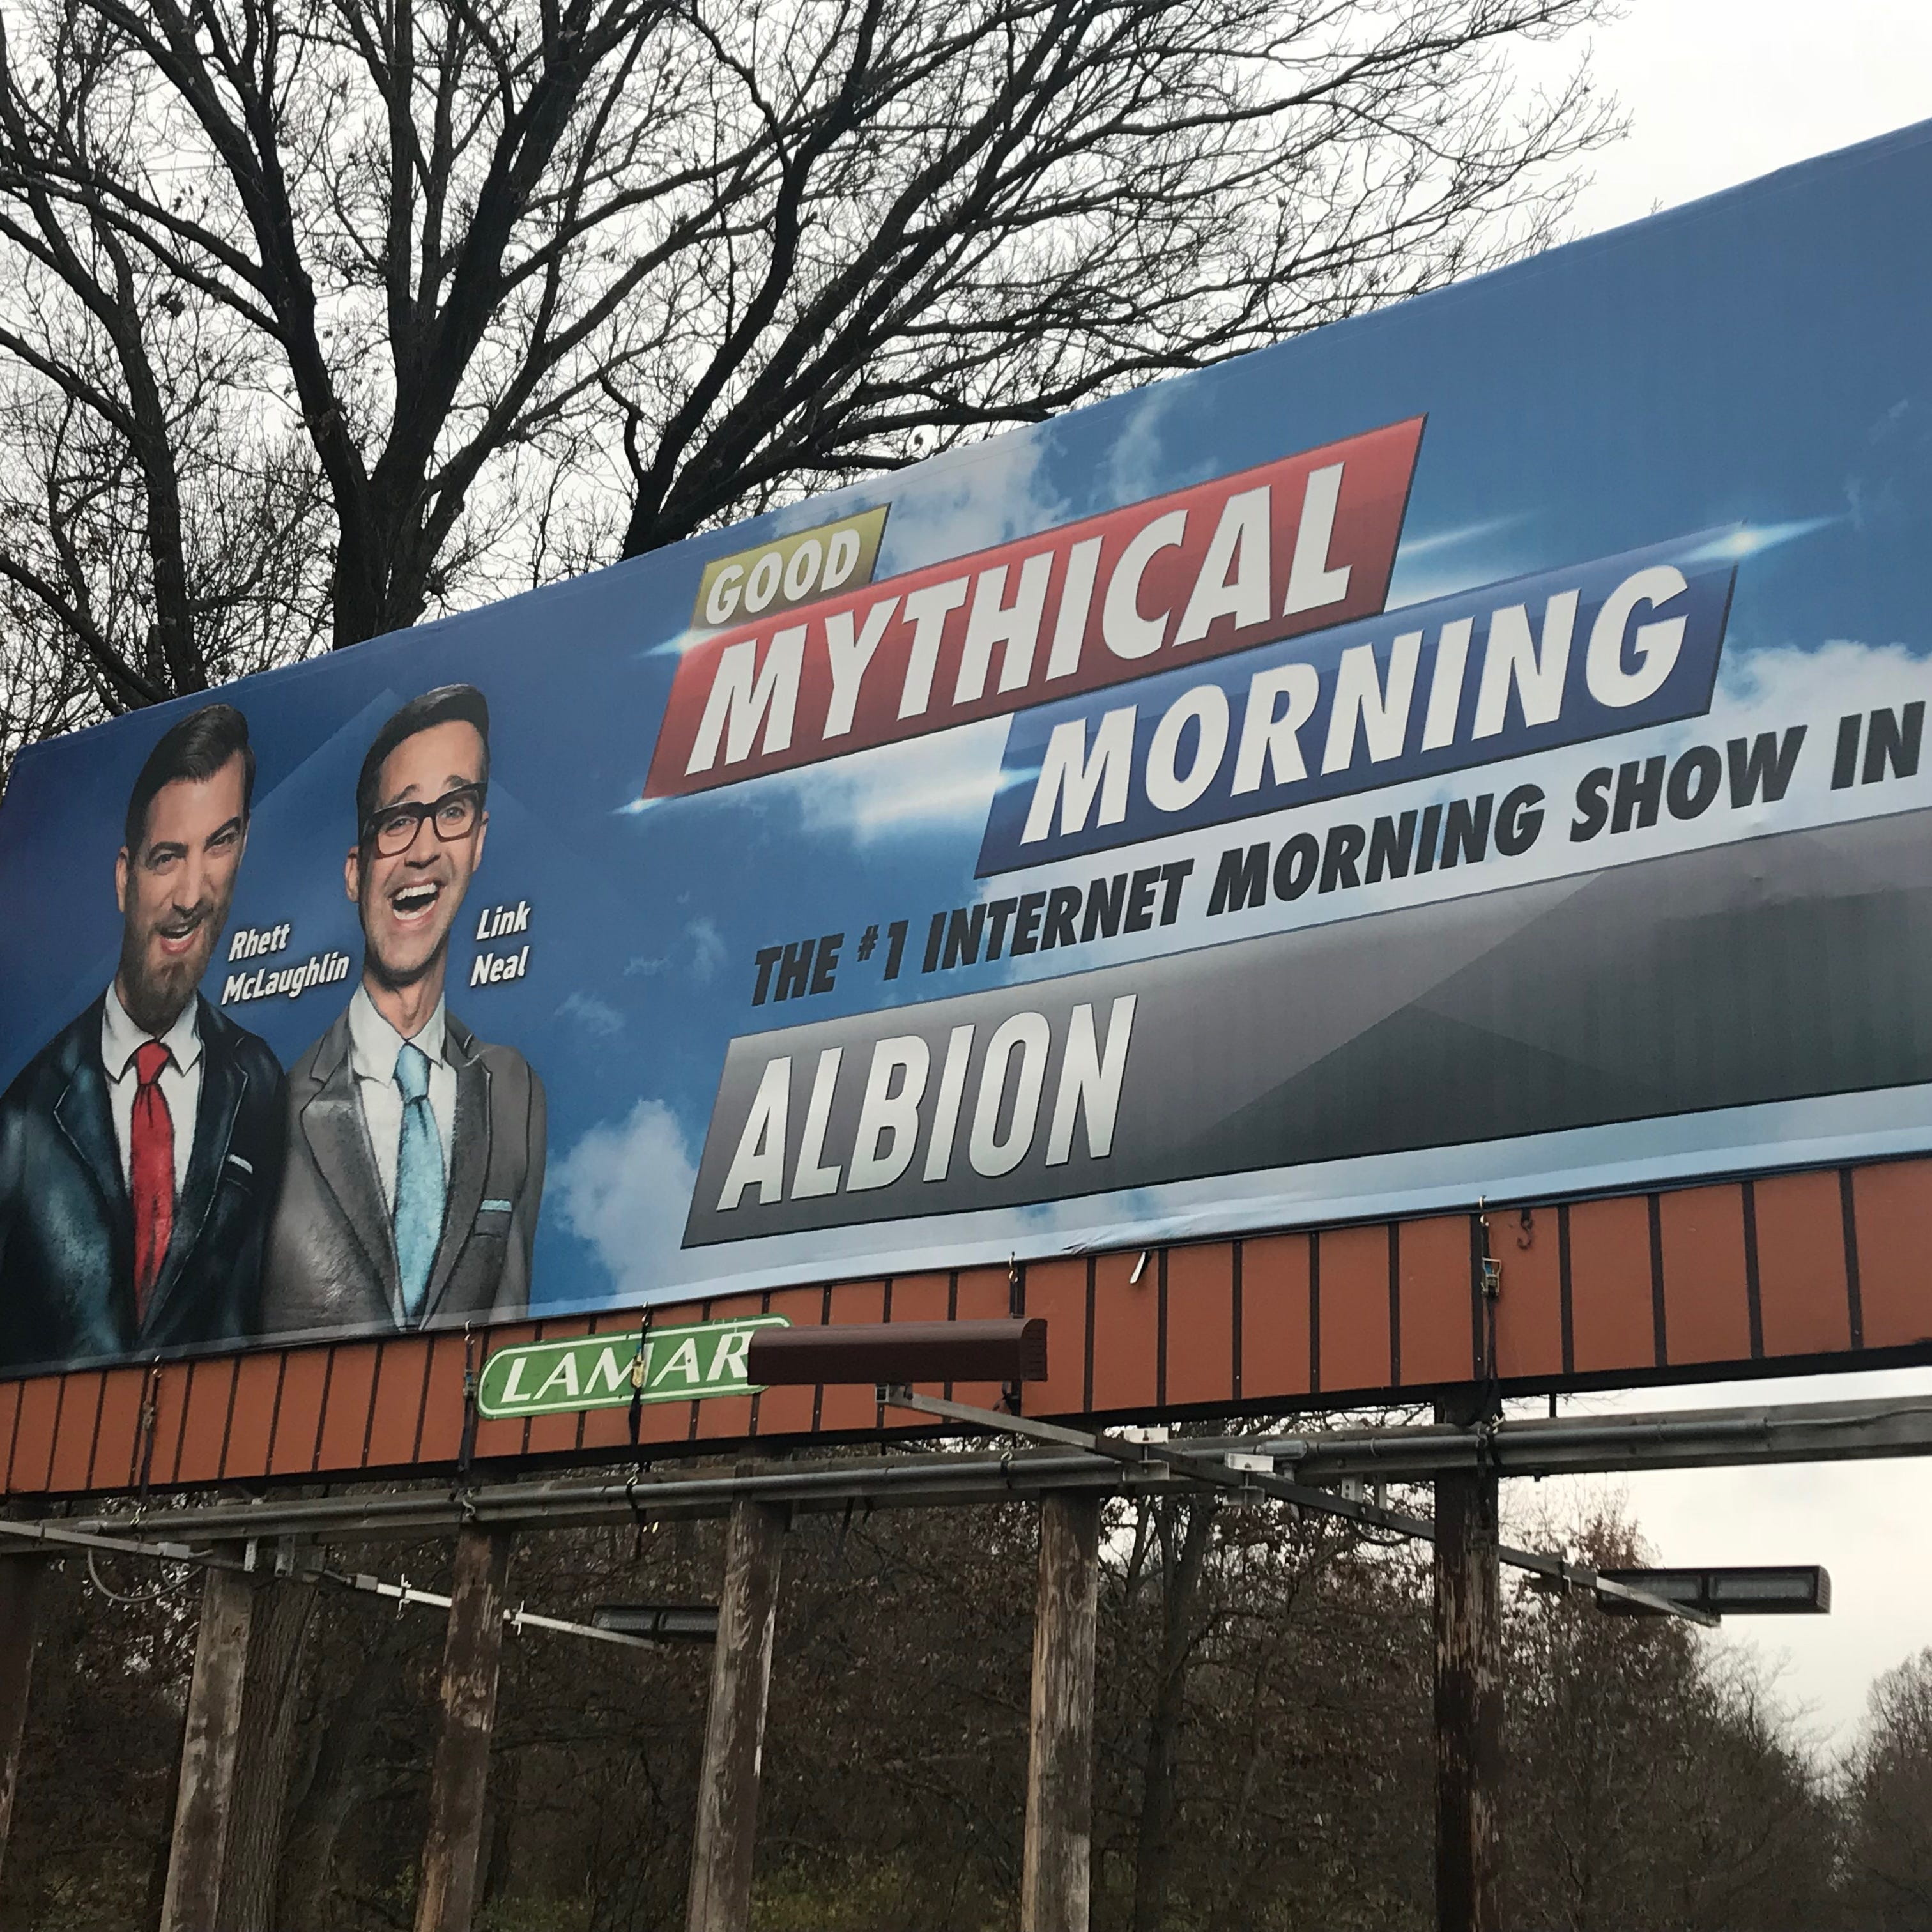 More than meets the eye: Shirtless YouTubers pop up on Albion billboard